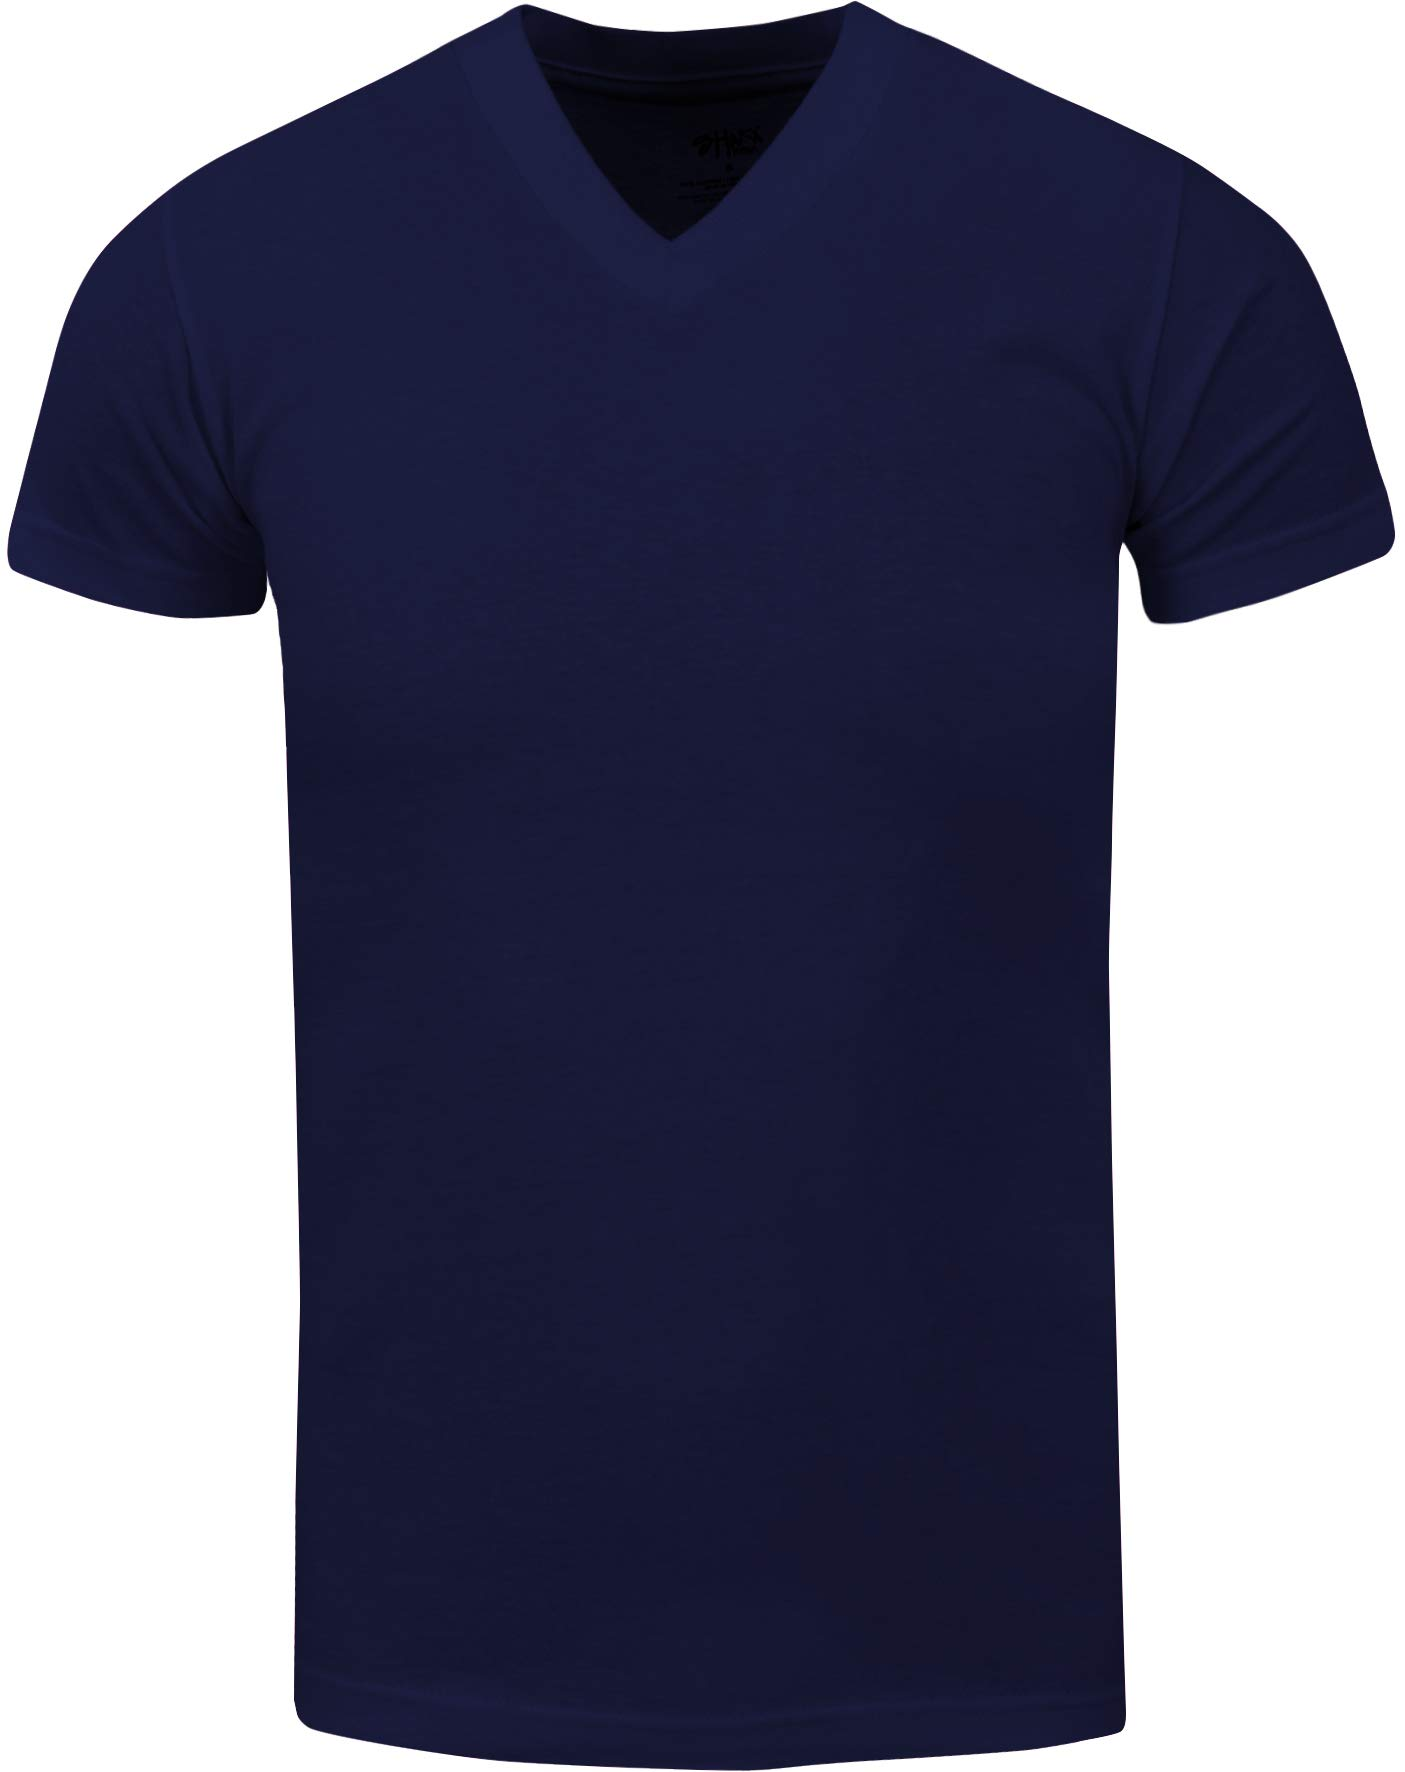 VNS03_ Active Mens Premium Cotton Heavy Weight V Neck Basic T Shirt Navy